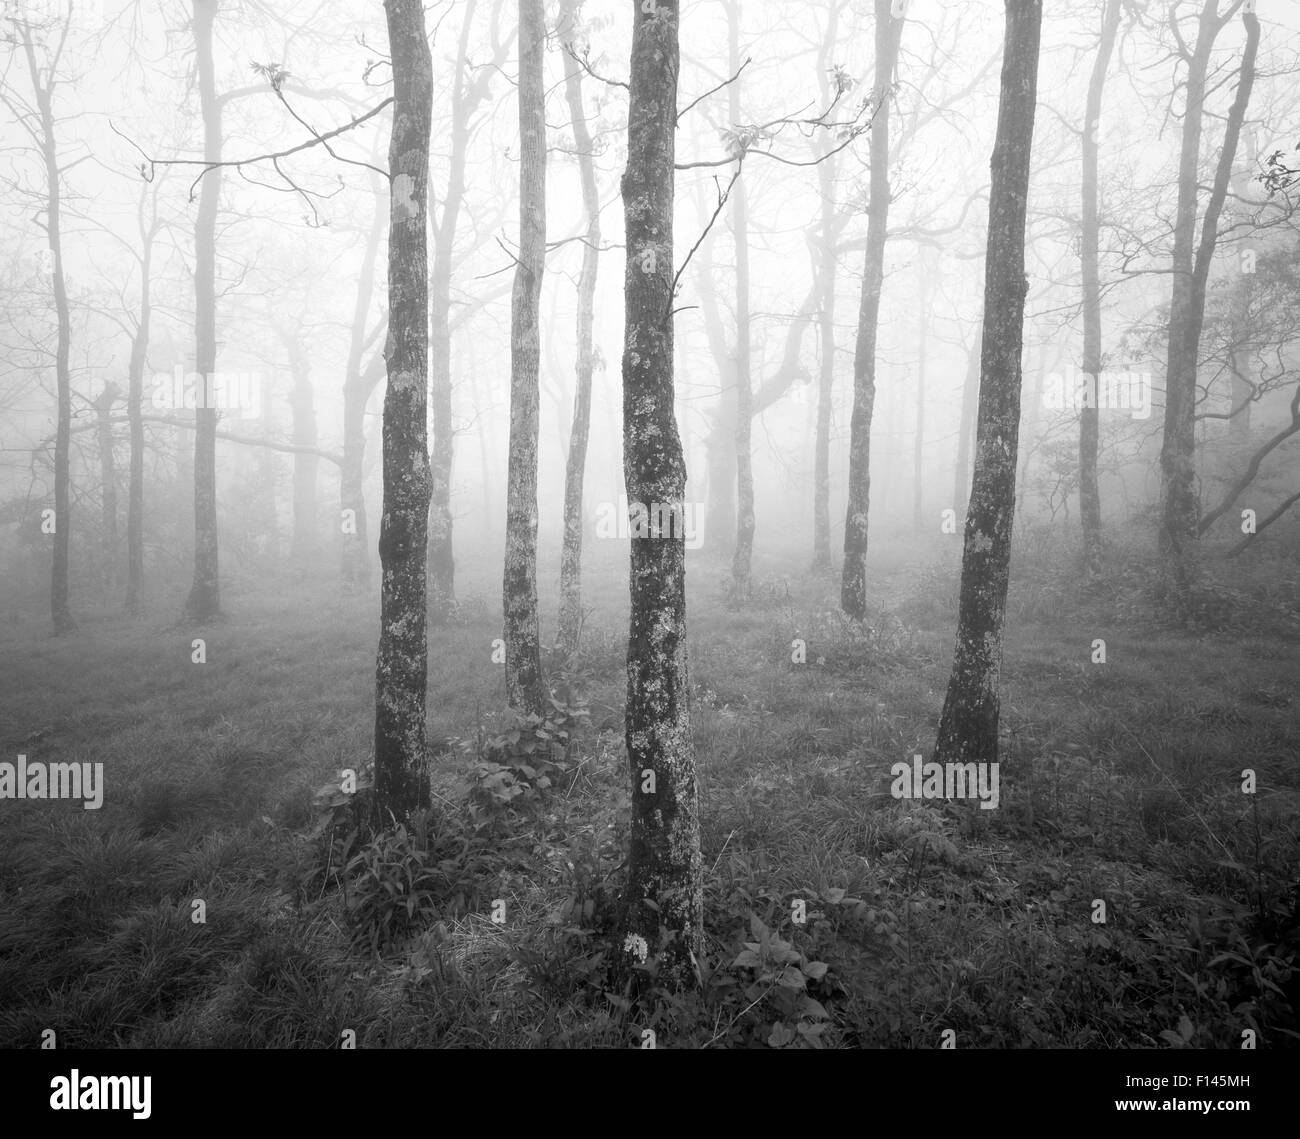 Black and white photograph of misty forest at the start of the Appalachian Trail on Springer Mountain, Georgia, - Stock Image